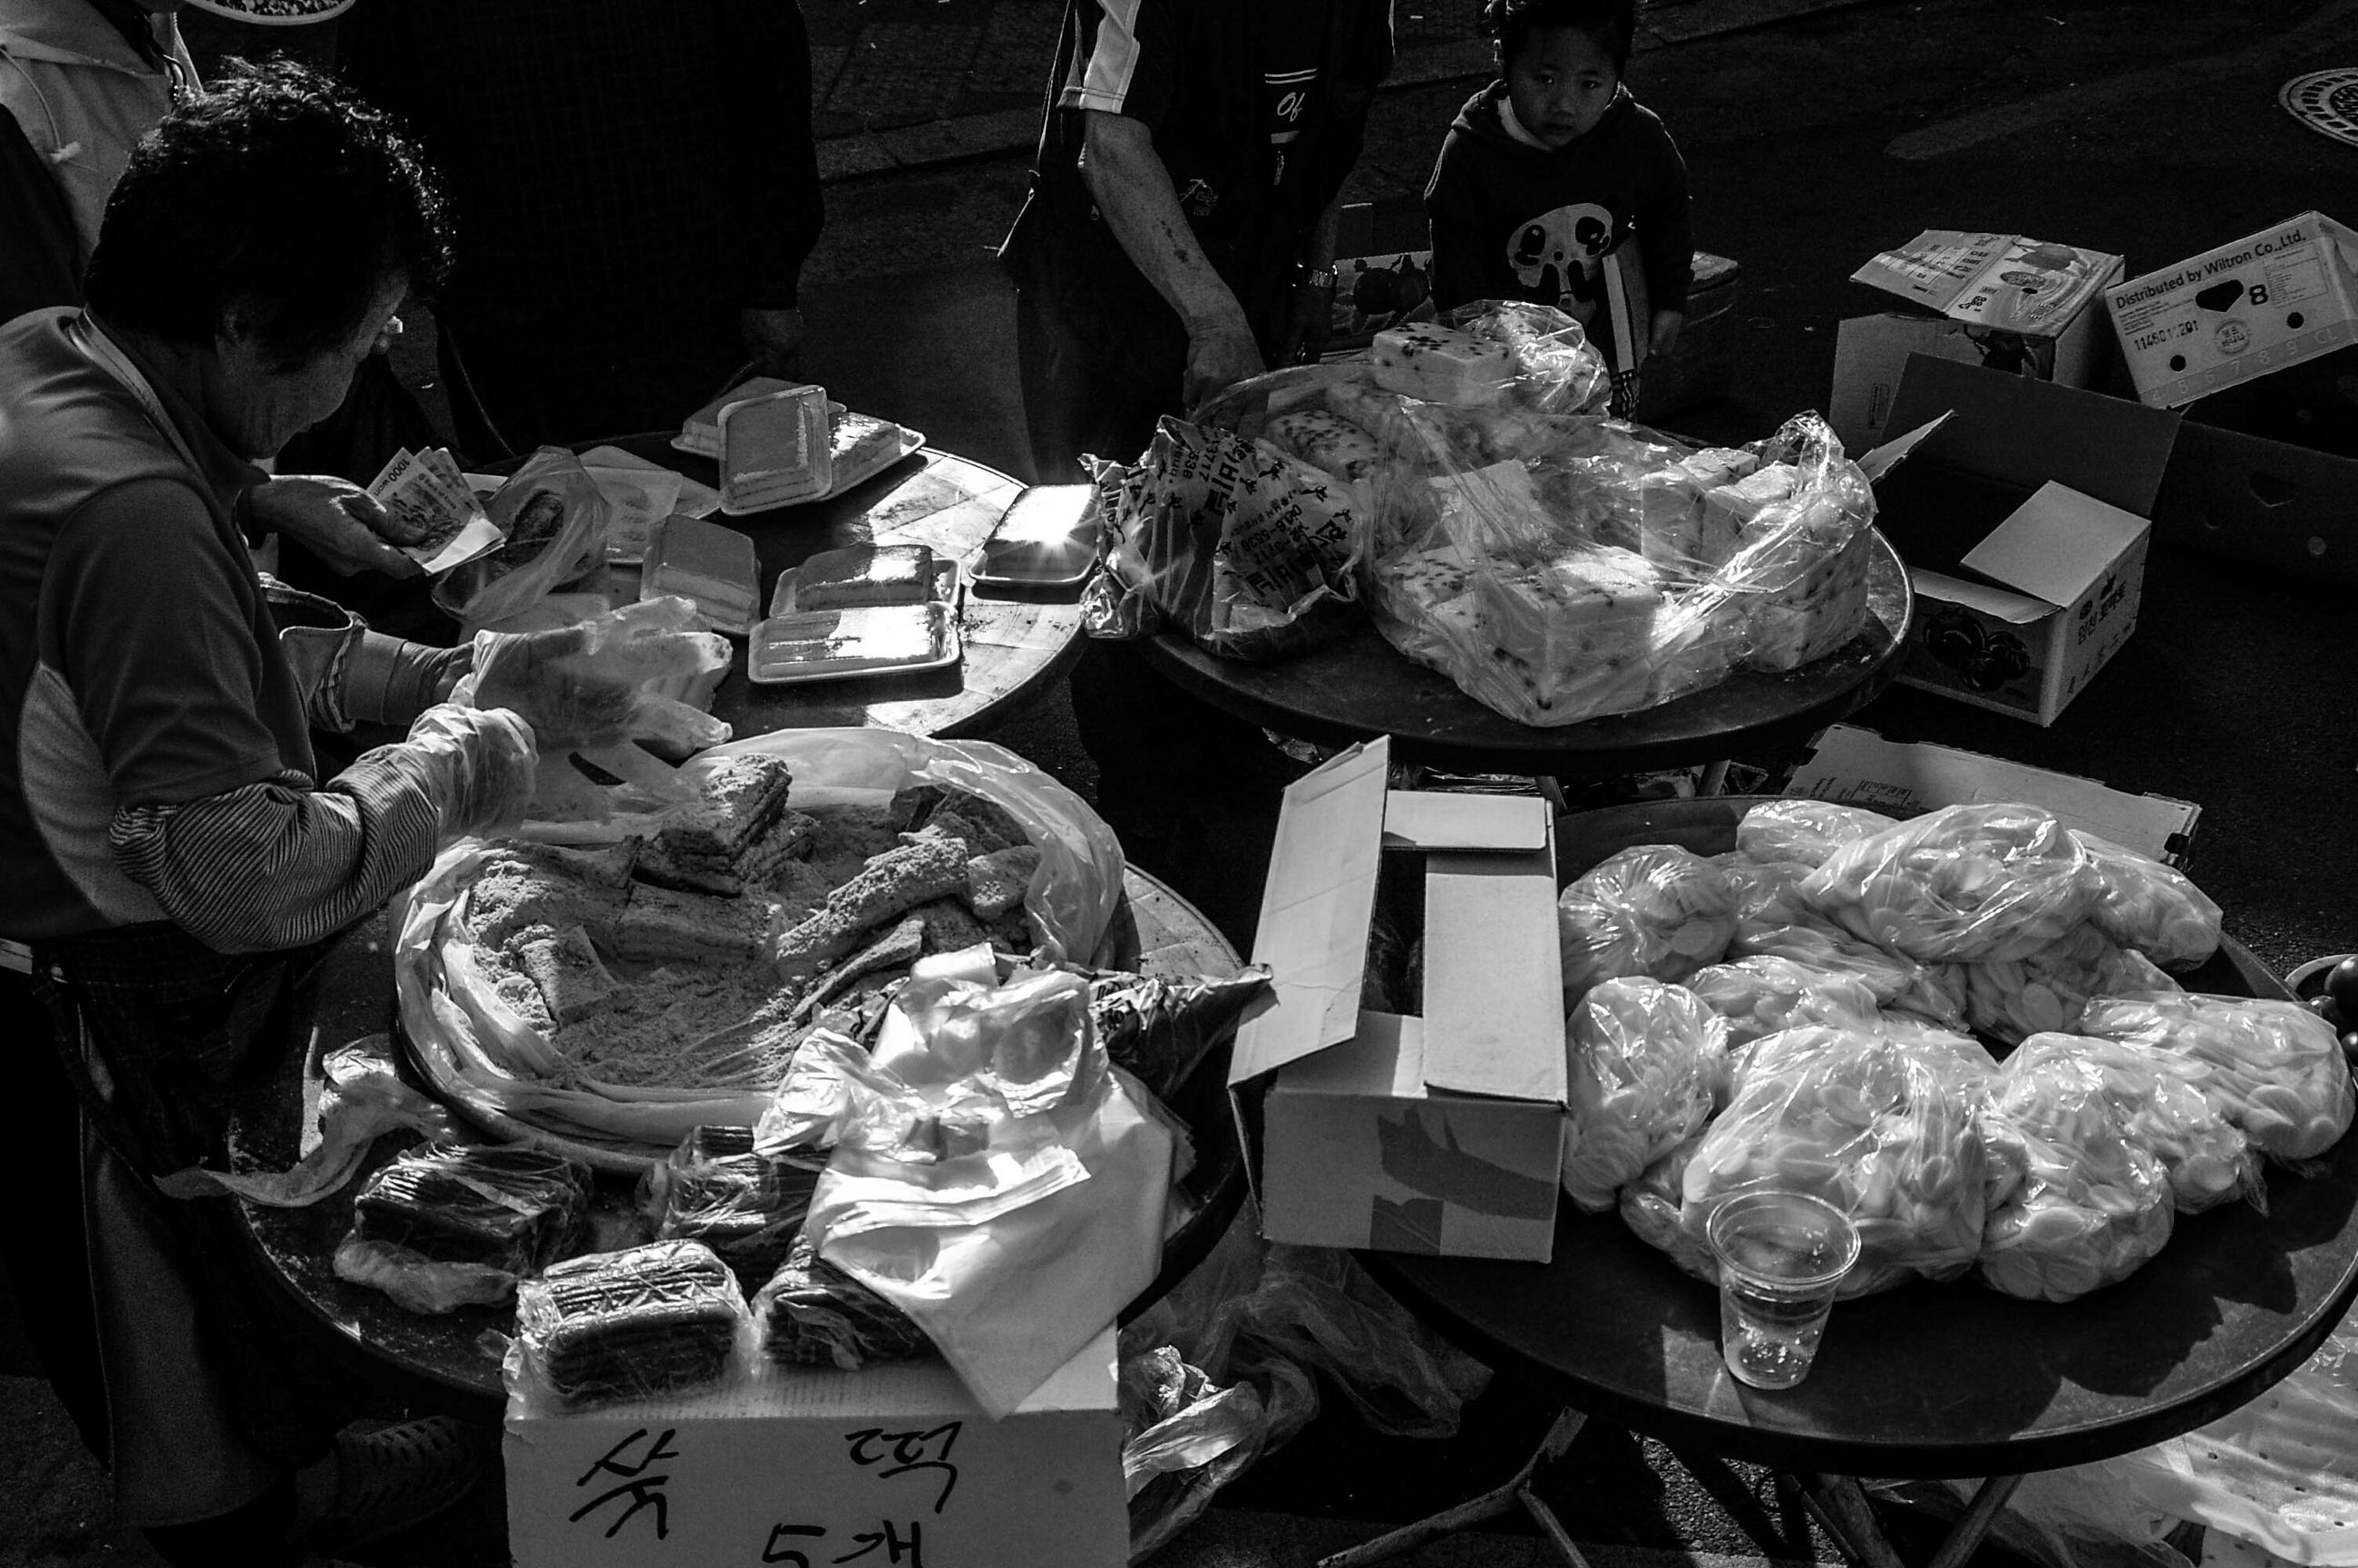 indoors, food and drink, food, freshness, retail, for sale, market, men, small business, holding, incidental people, high angle view, market stall, still life, working, occupation, preparation, human representation